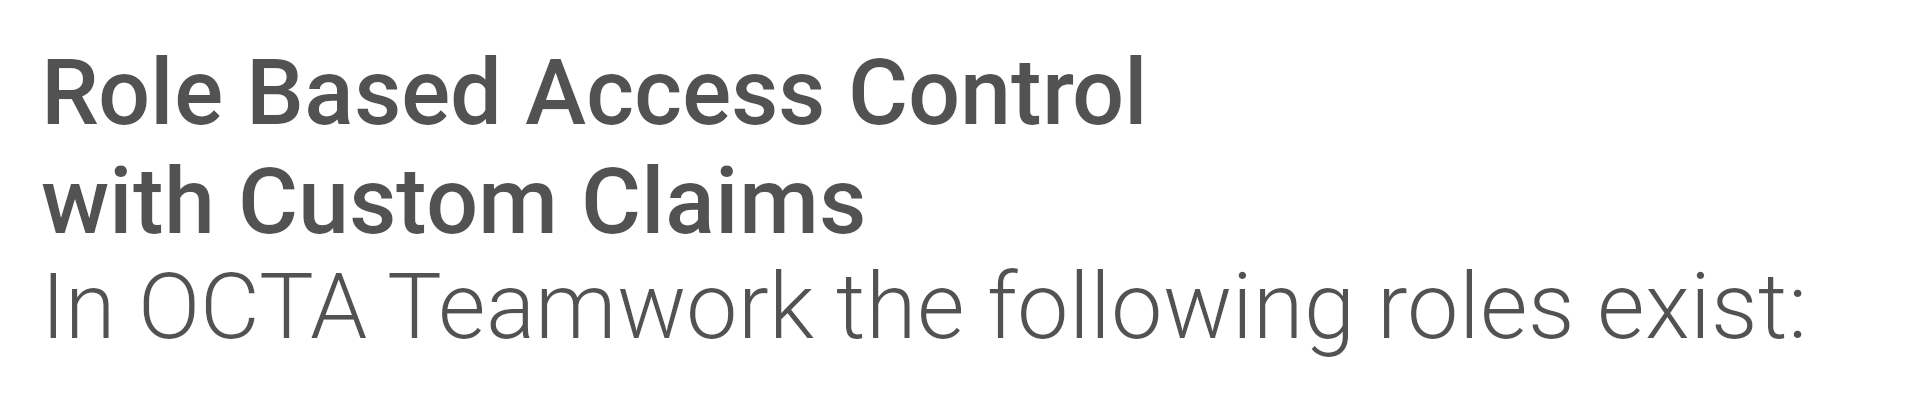 Role based access control with Custom claims